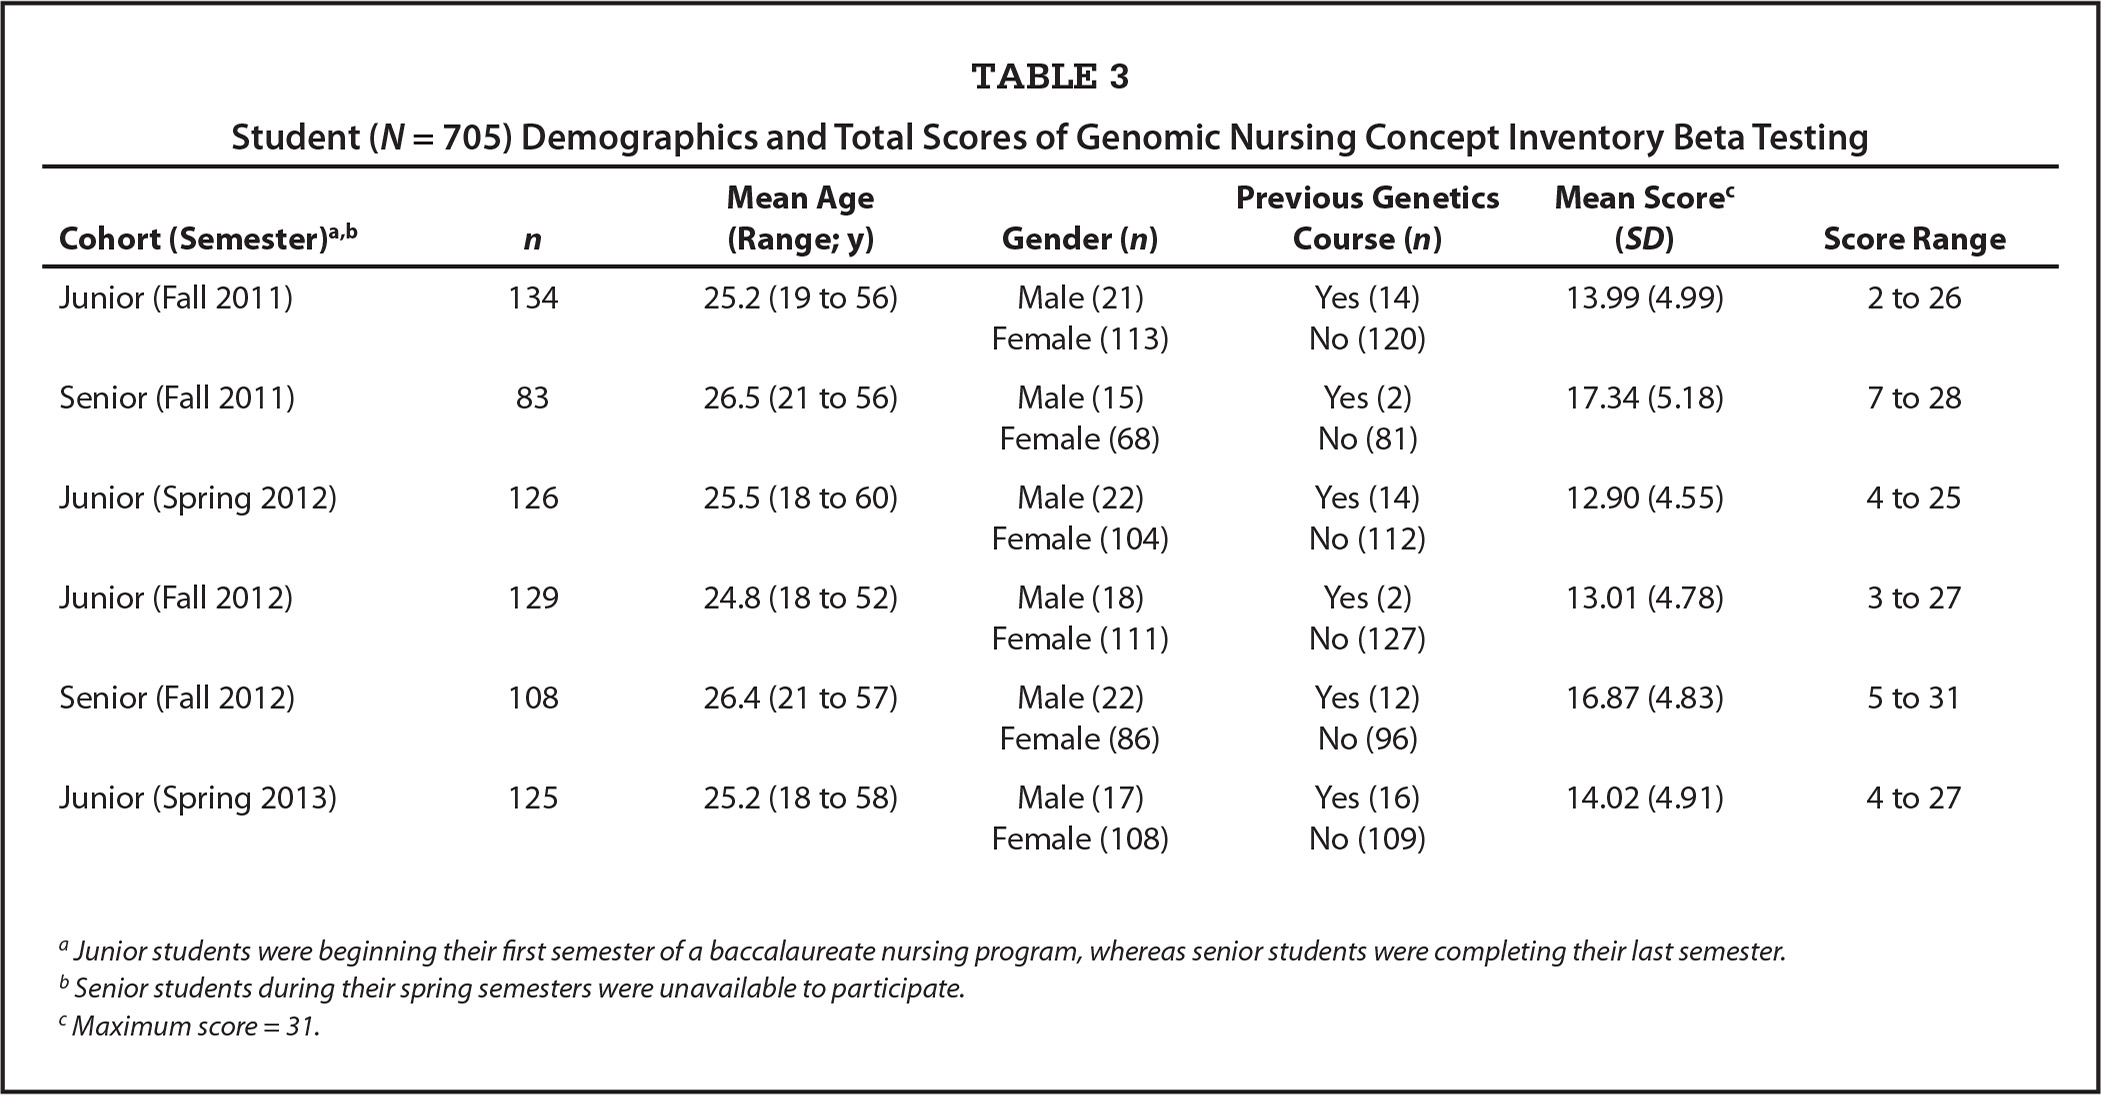 Student (N = 705) Demographics and Total Scores of Genomic Nursing Concept Inventory Beta Testing